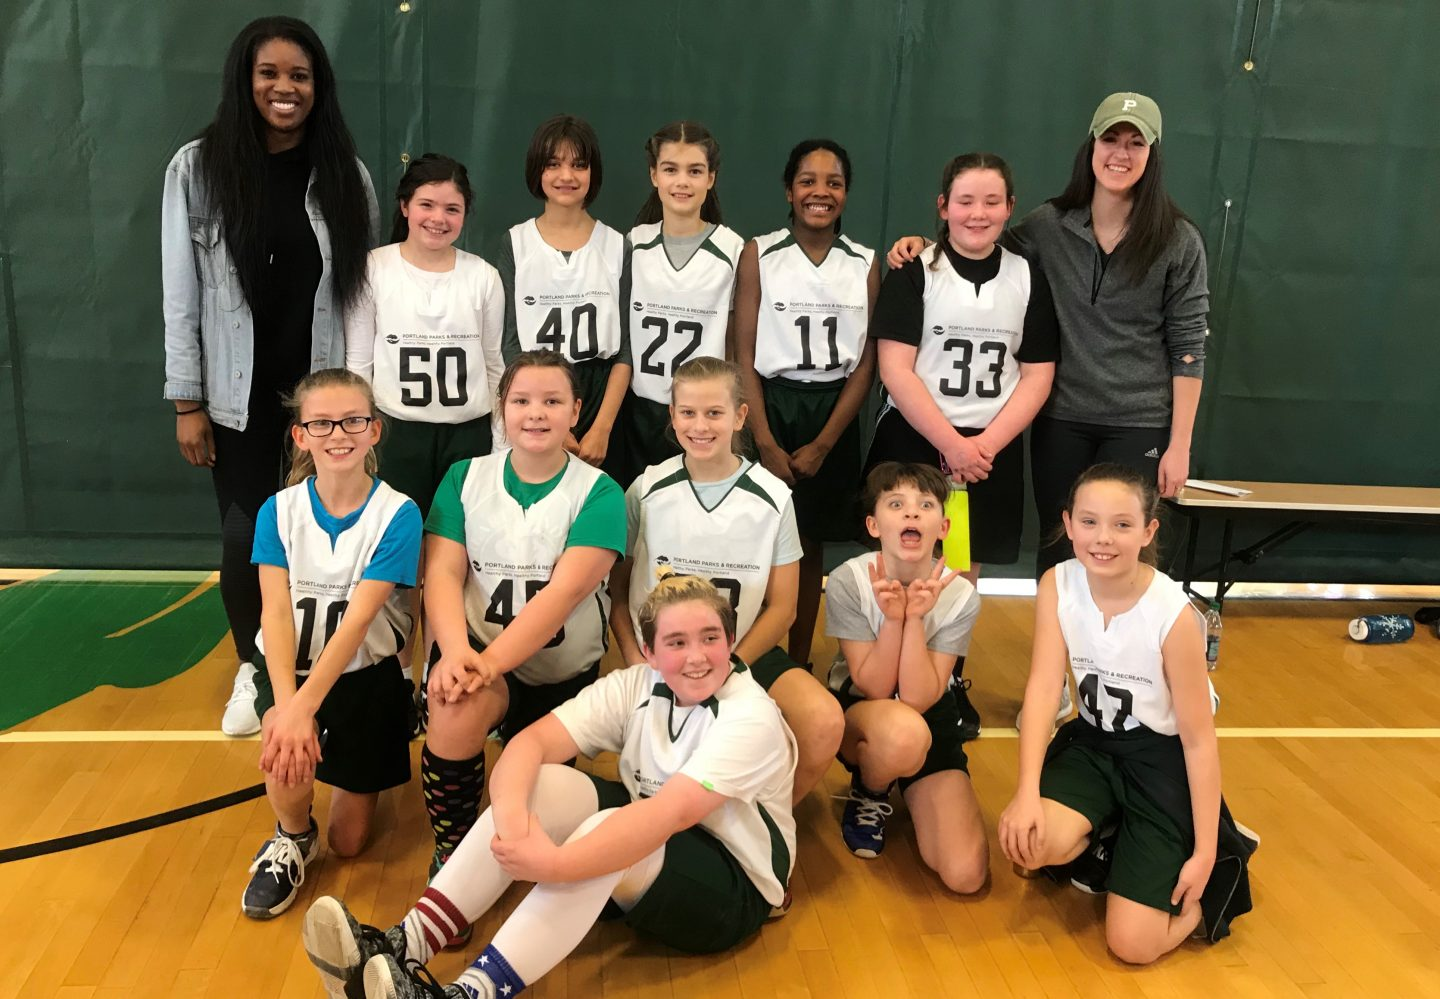 An all girls basketball team take a team photo together after a training session. team, basketball, sports, activity, teamwork